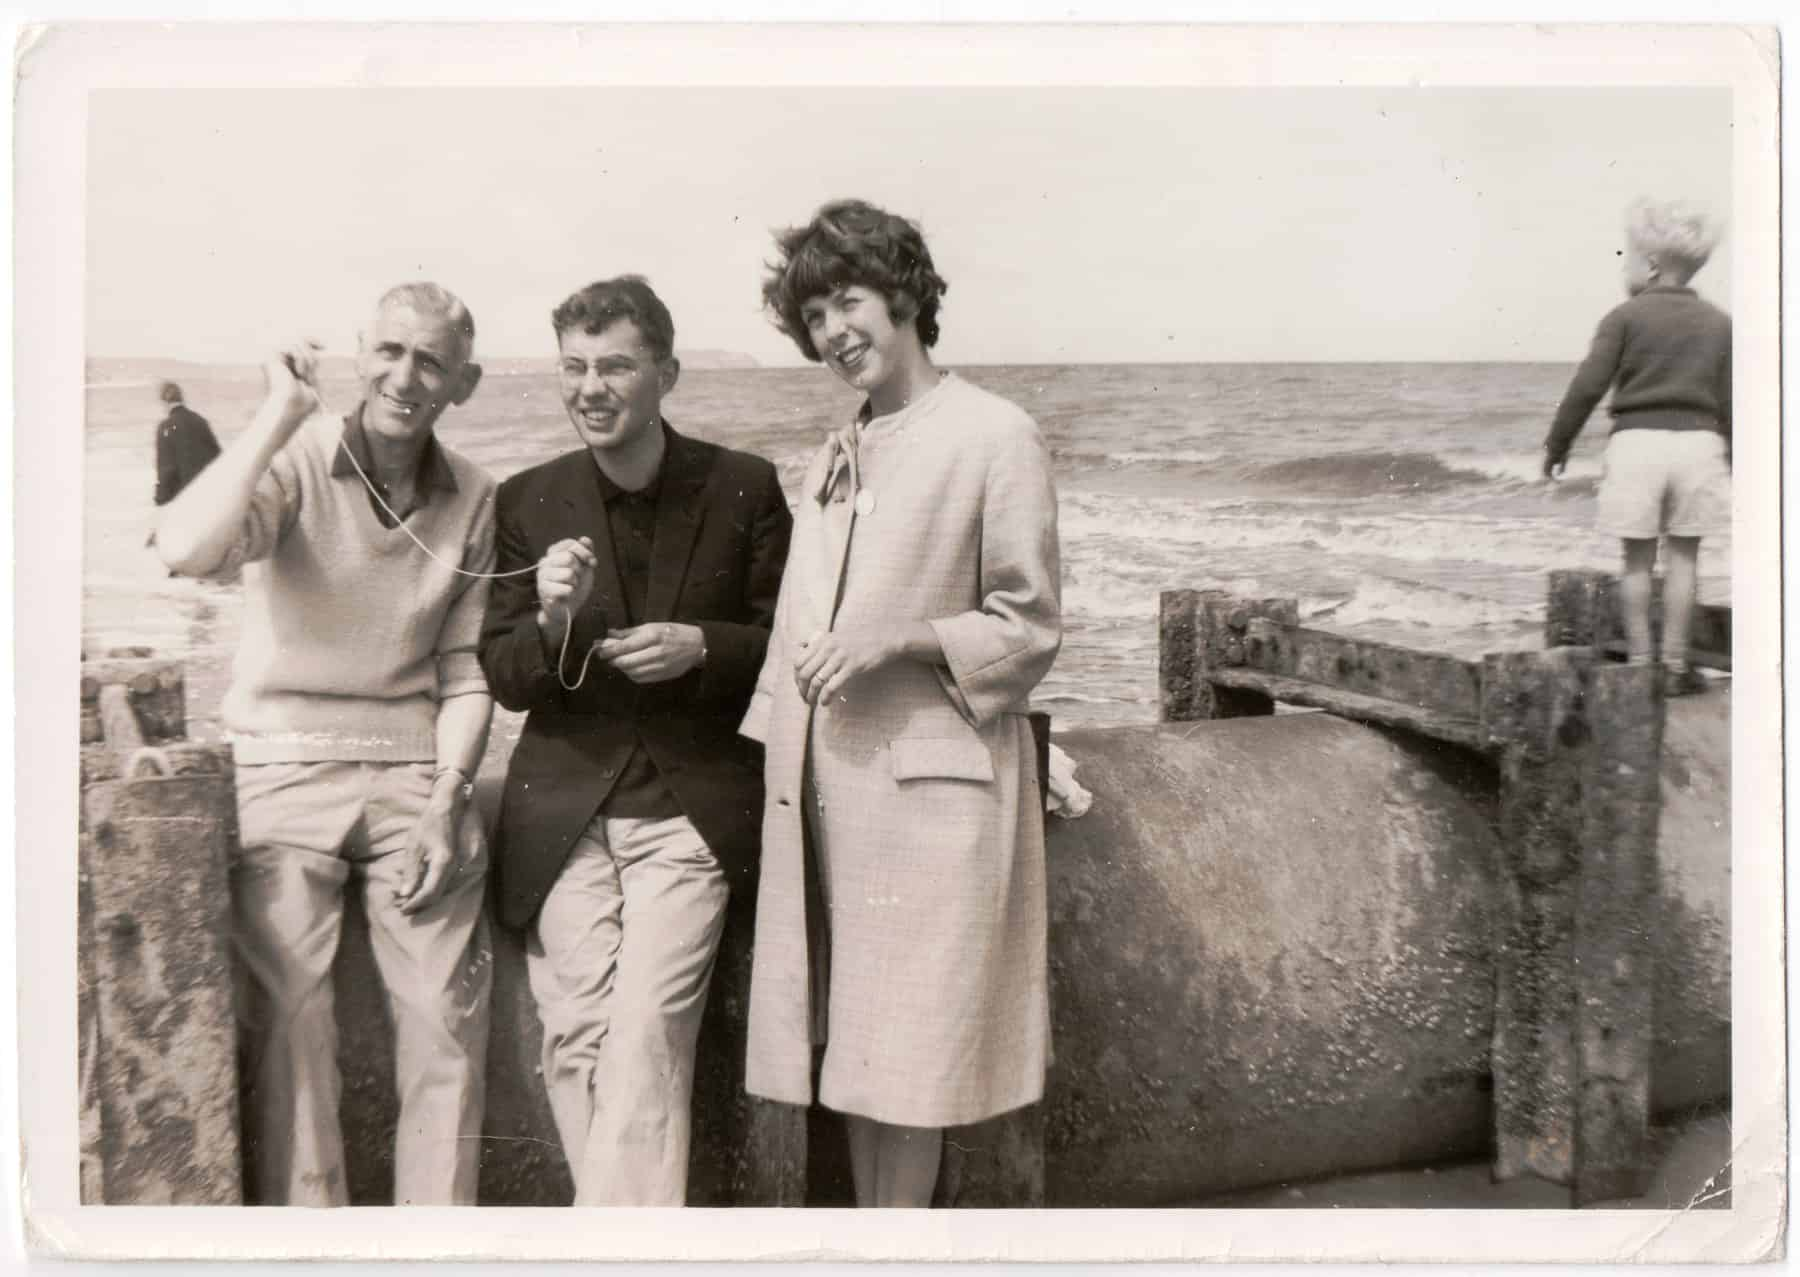 Gary's dad Bill Watton flying a kite with Gary and Dorothy at Weston-super-Mare in 1964.